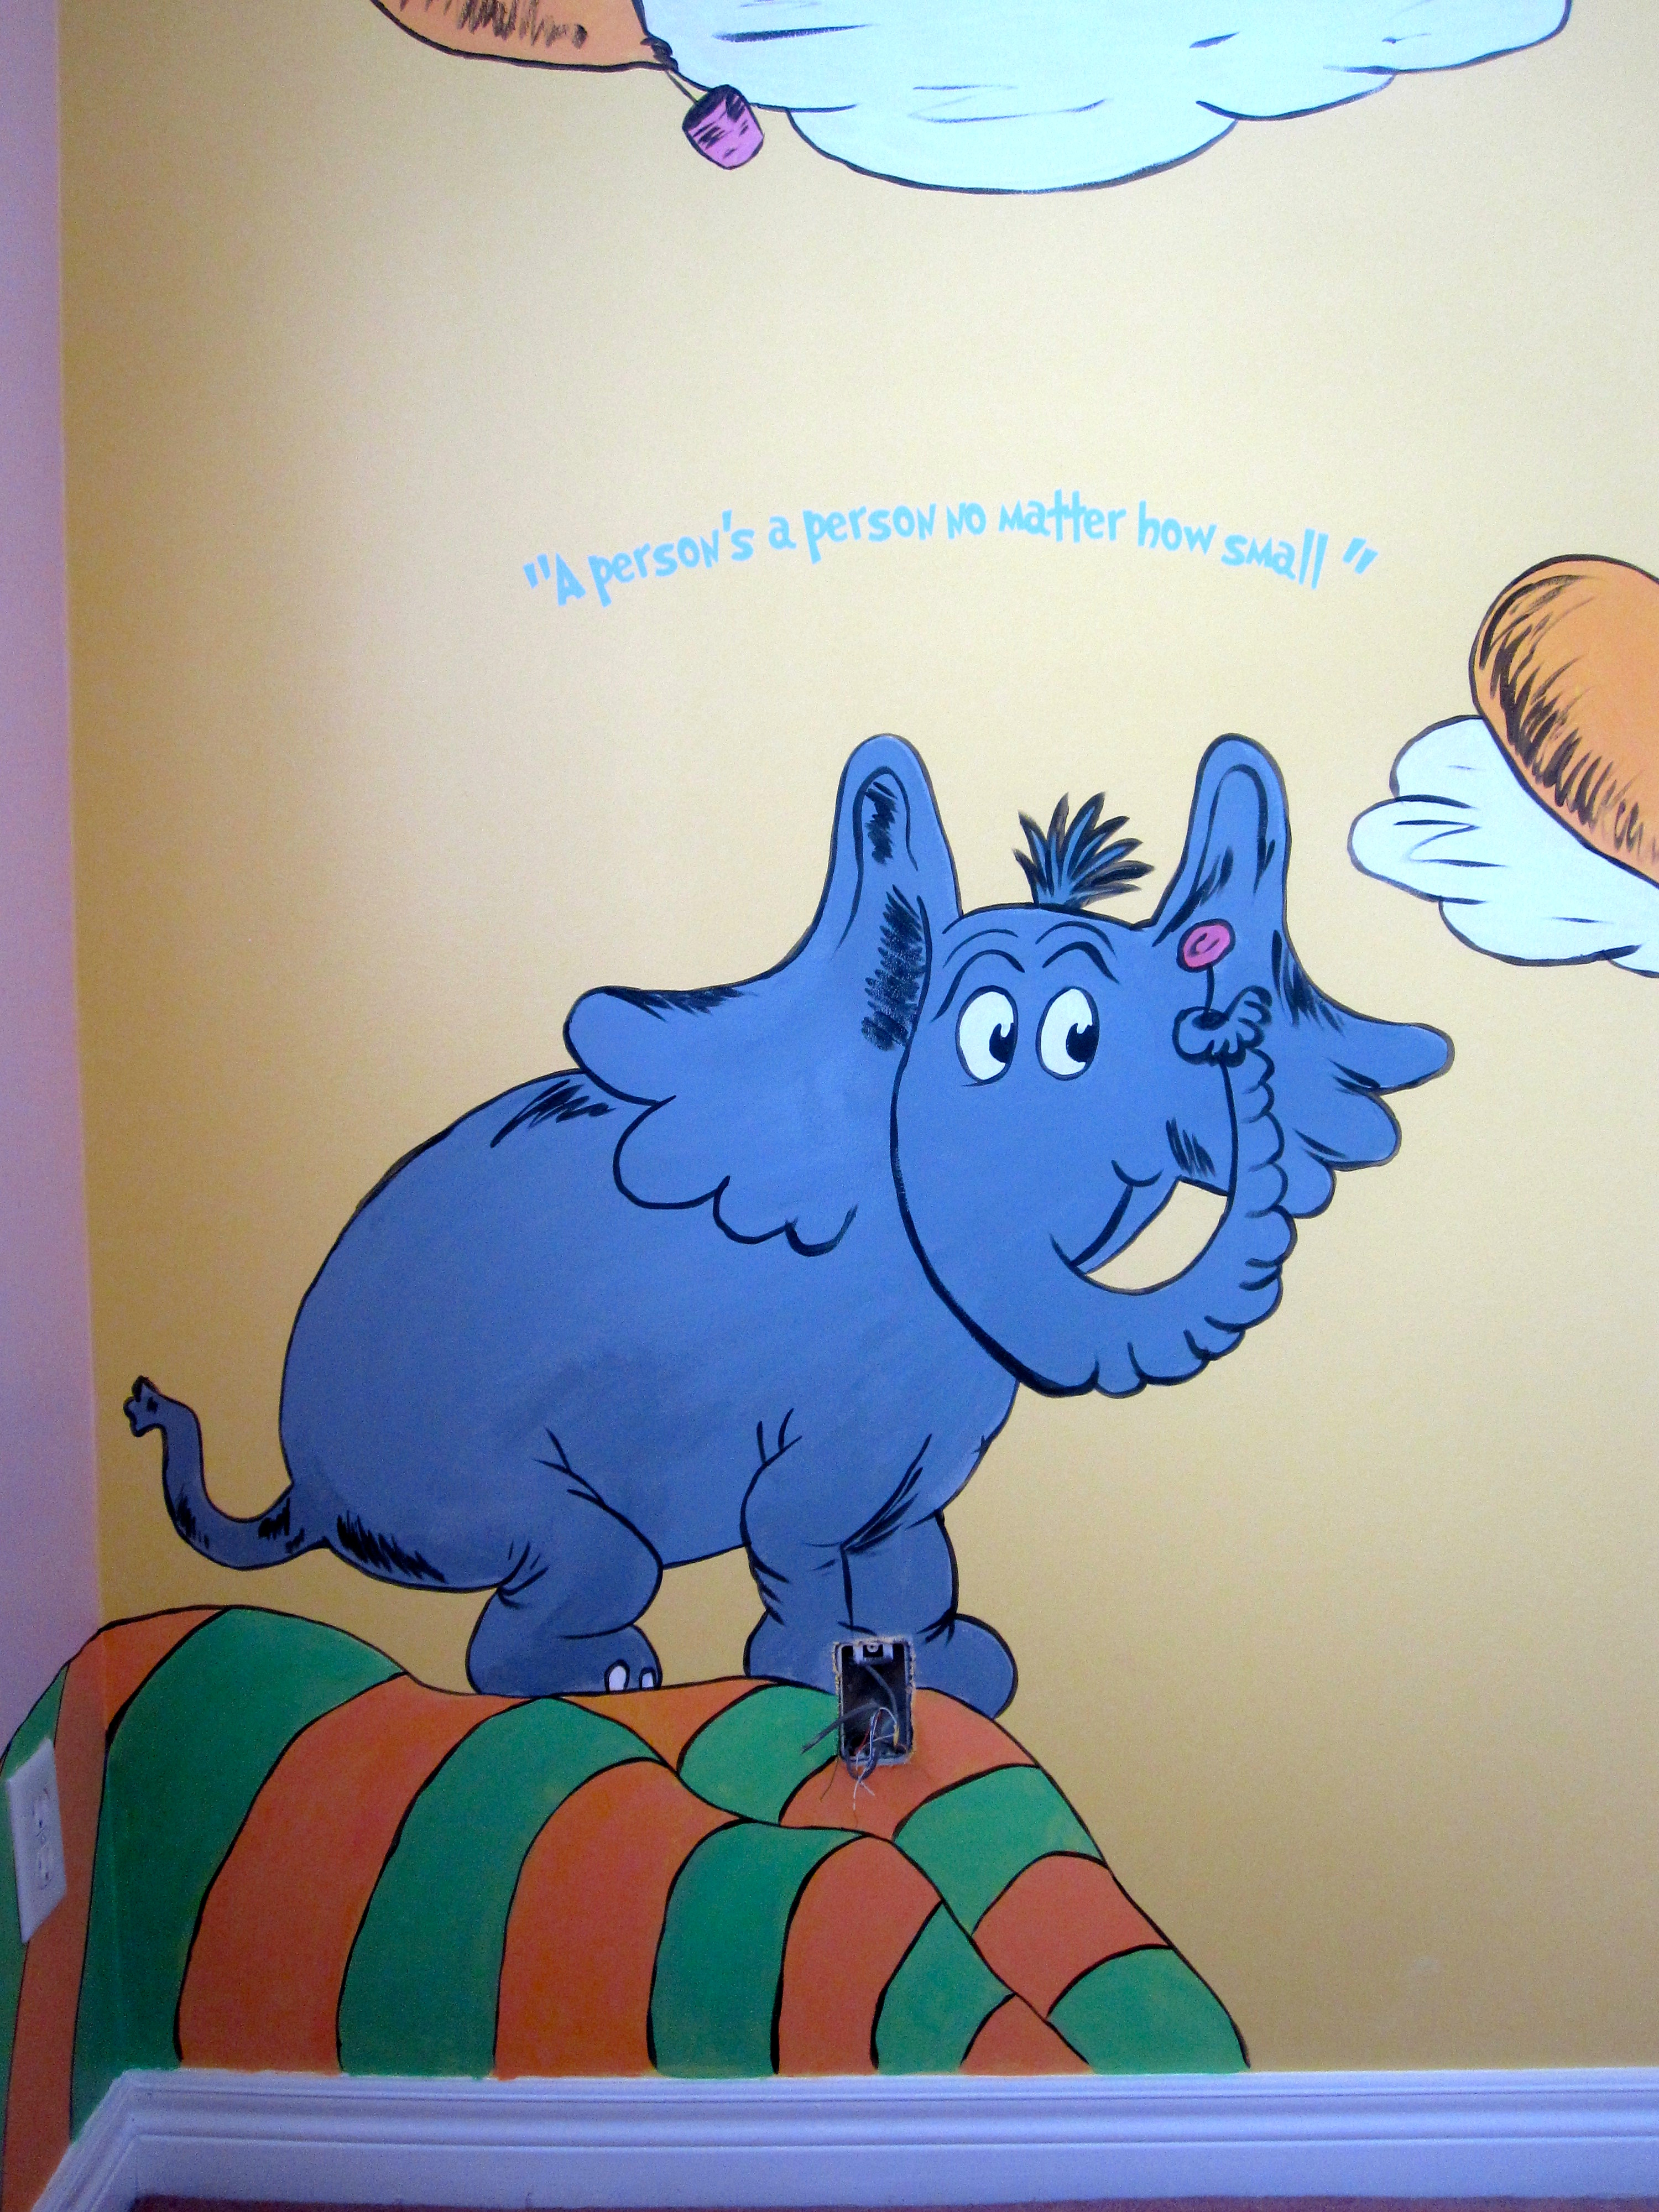 Horton Hears A Who! Quotes Quotesgram. Cerebral Signs Of Stroke. Lunges Signs. Cocktail Signs. Twin Flame Signs Of Stroke. Building Signs Of Stroke. Auditory Processing Signs. Neurodiversity Movement Signs. Gemeni Signs